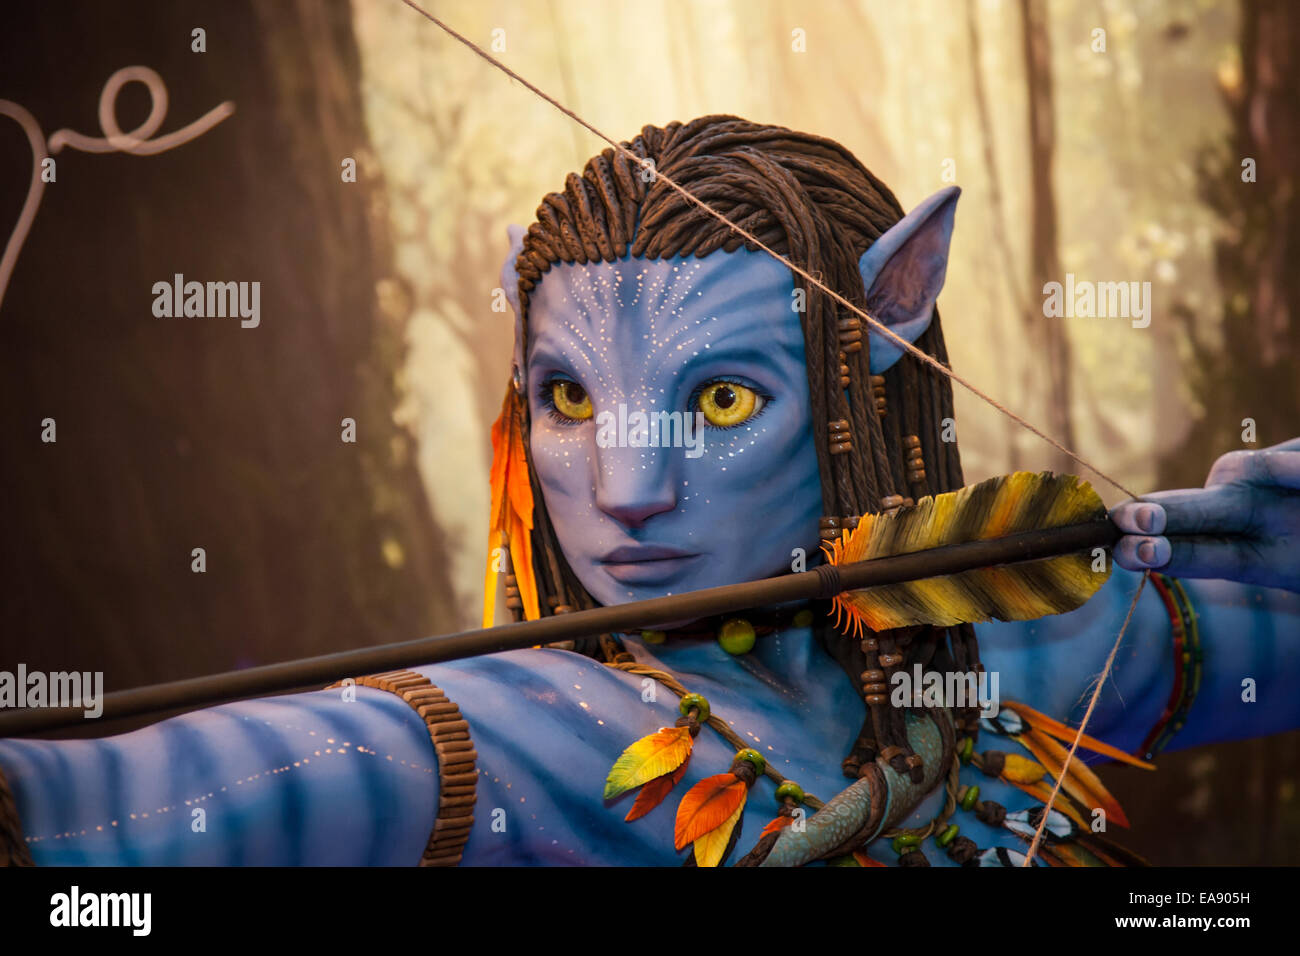 Avatar cake at Cake International at the NEC where bakers show off their wonderful cakes and compete against each - Stock Image